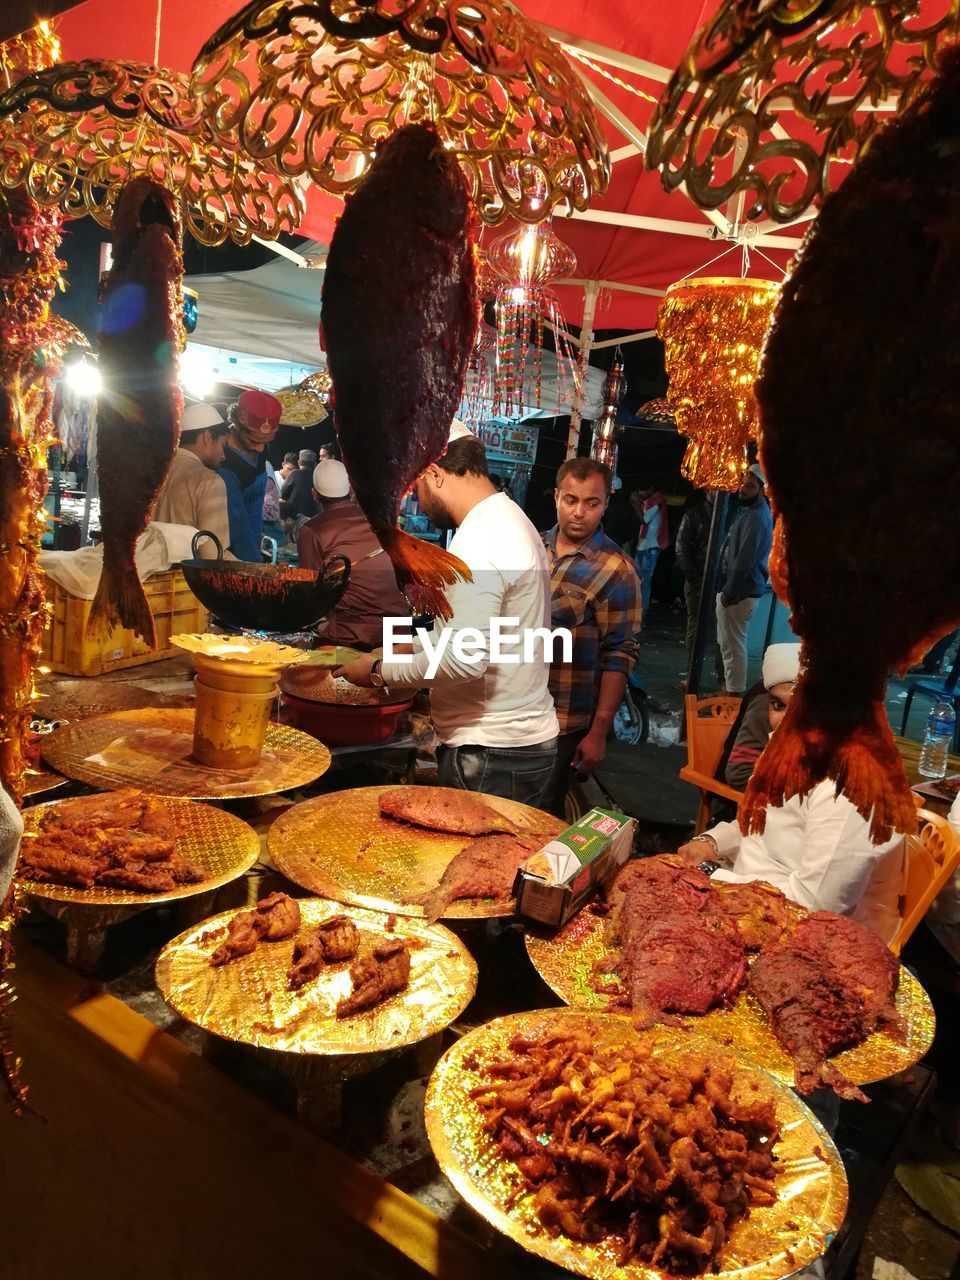 food and drink, food, retail, business, market, real people, choice, group of people, market stall, variation, men, for sale, women, adult, indoors, freshness, buying, medium group of people, meat, small business, consumerism, sale, street market